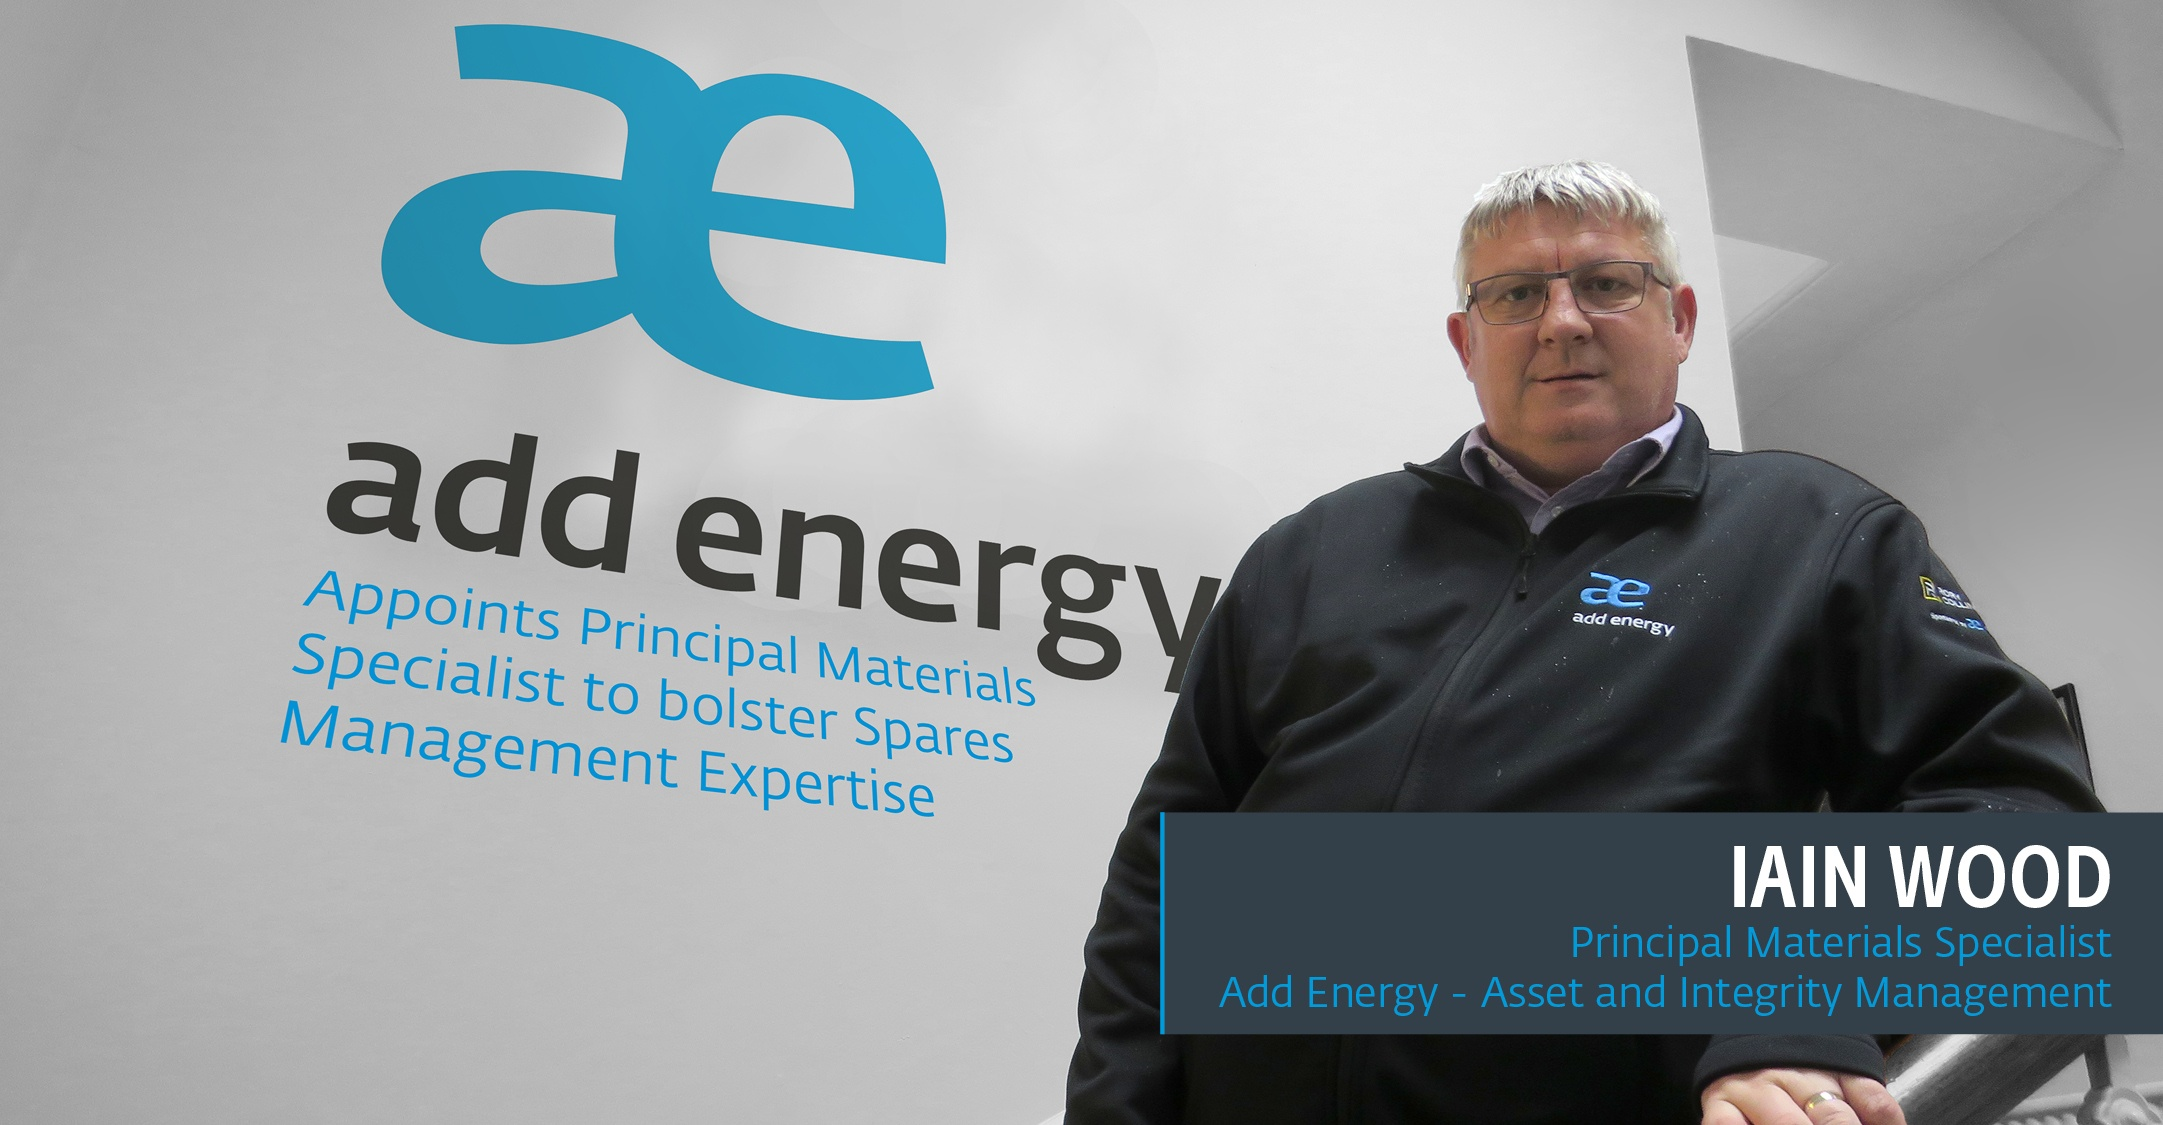 Add Energy appoints Principal Materials Specialist to bolster Spares Management expertise